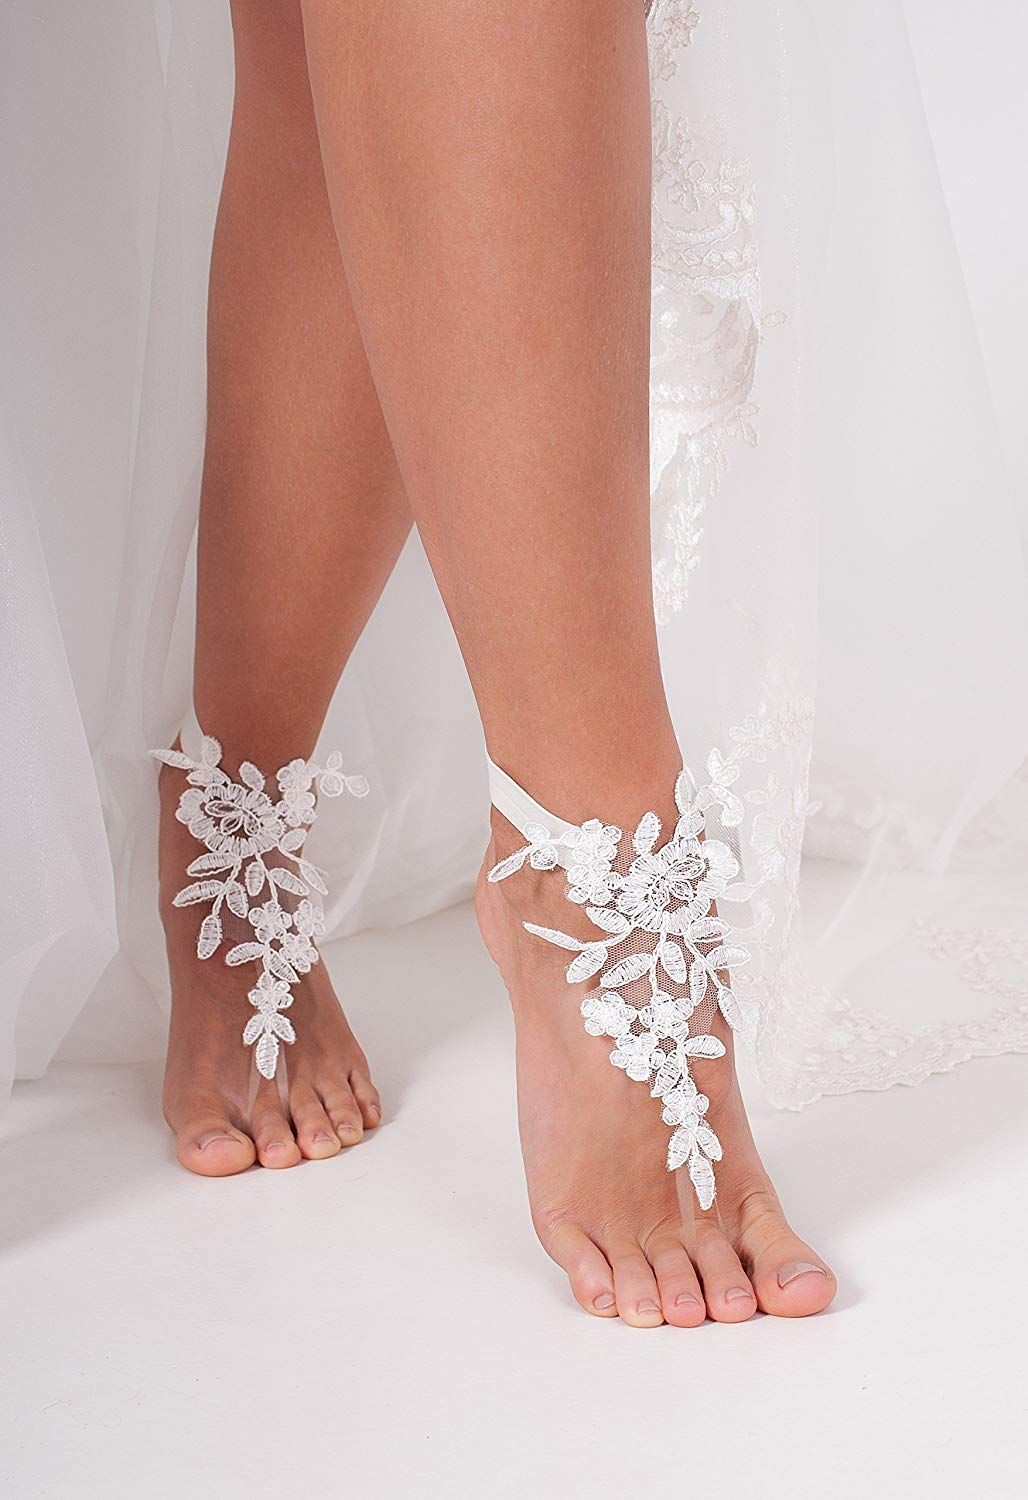 Lace Barefoot Sandals, Bridal accessory, Nude shoes, Foot thongs, French Lace, Sexy, Beach wedding Anklet, bottomless shoes